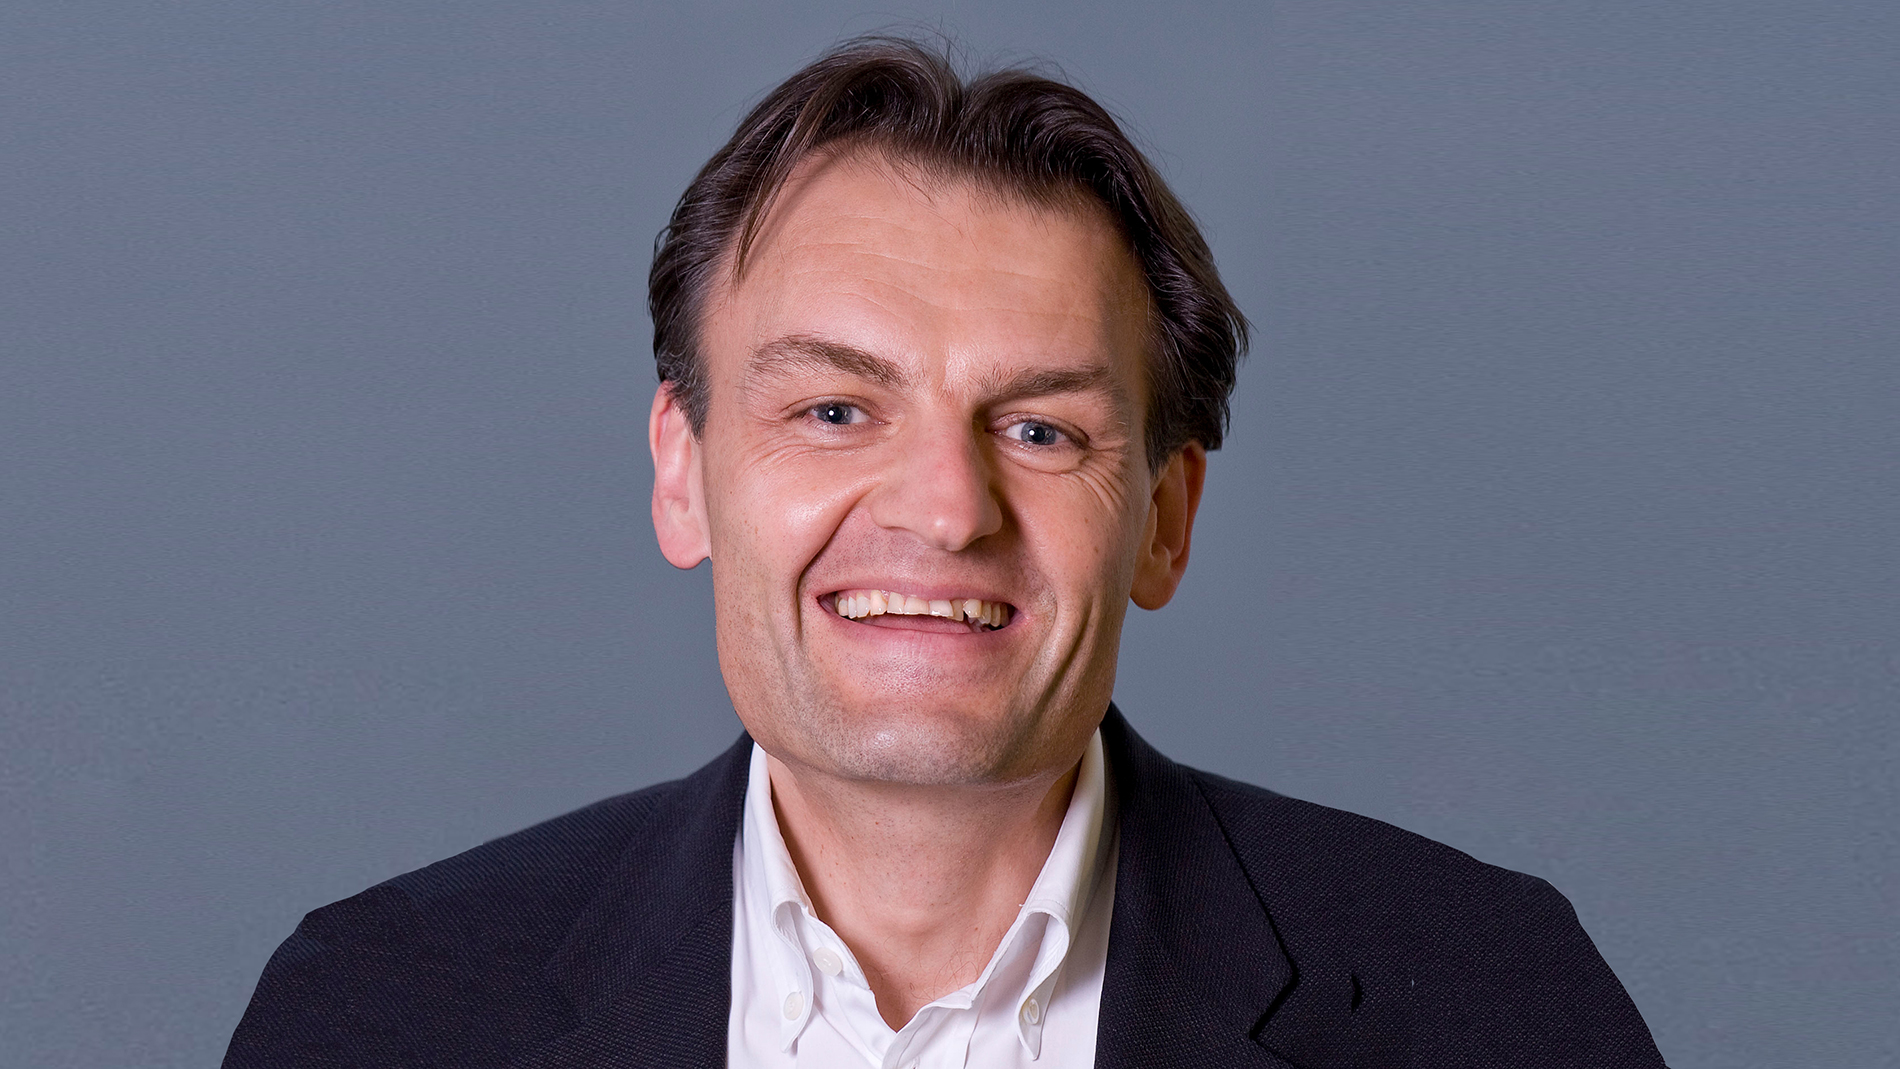 Prof. Dr. Johann Walter Kolar, Power Electronic Systems Laboratory, ETH Zurich, Switzerland